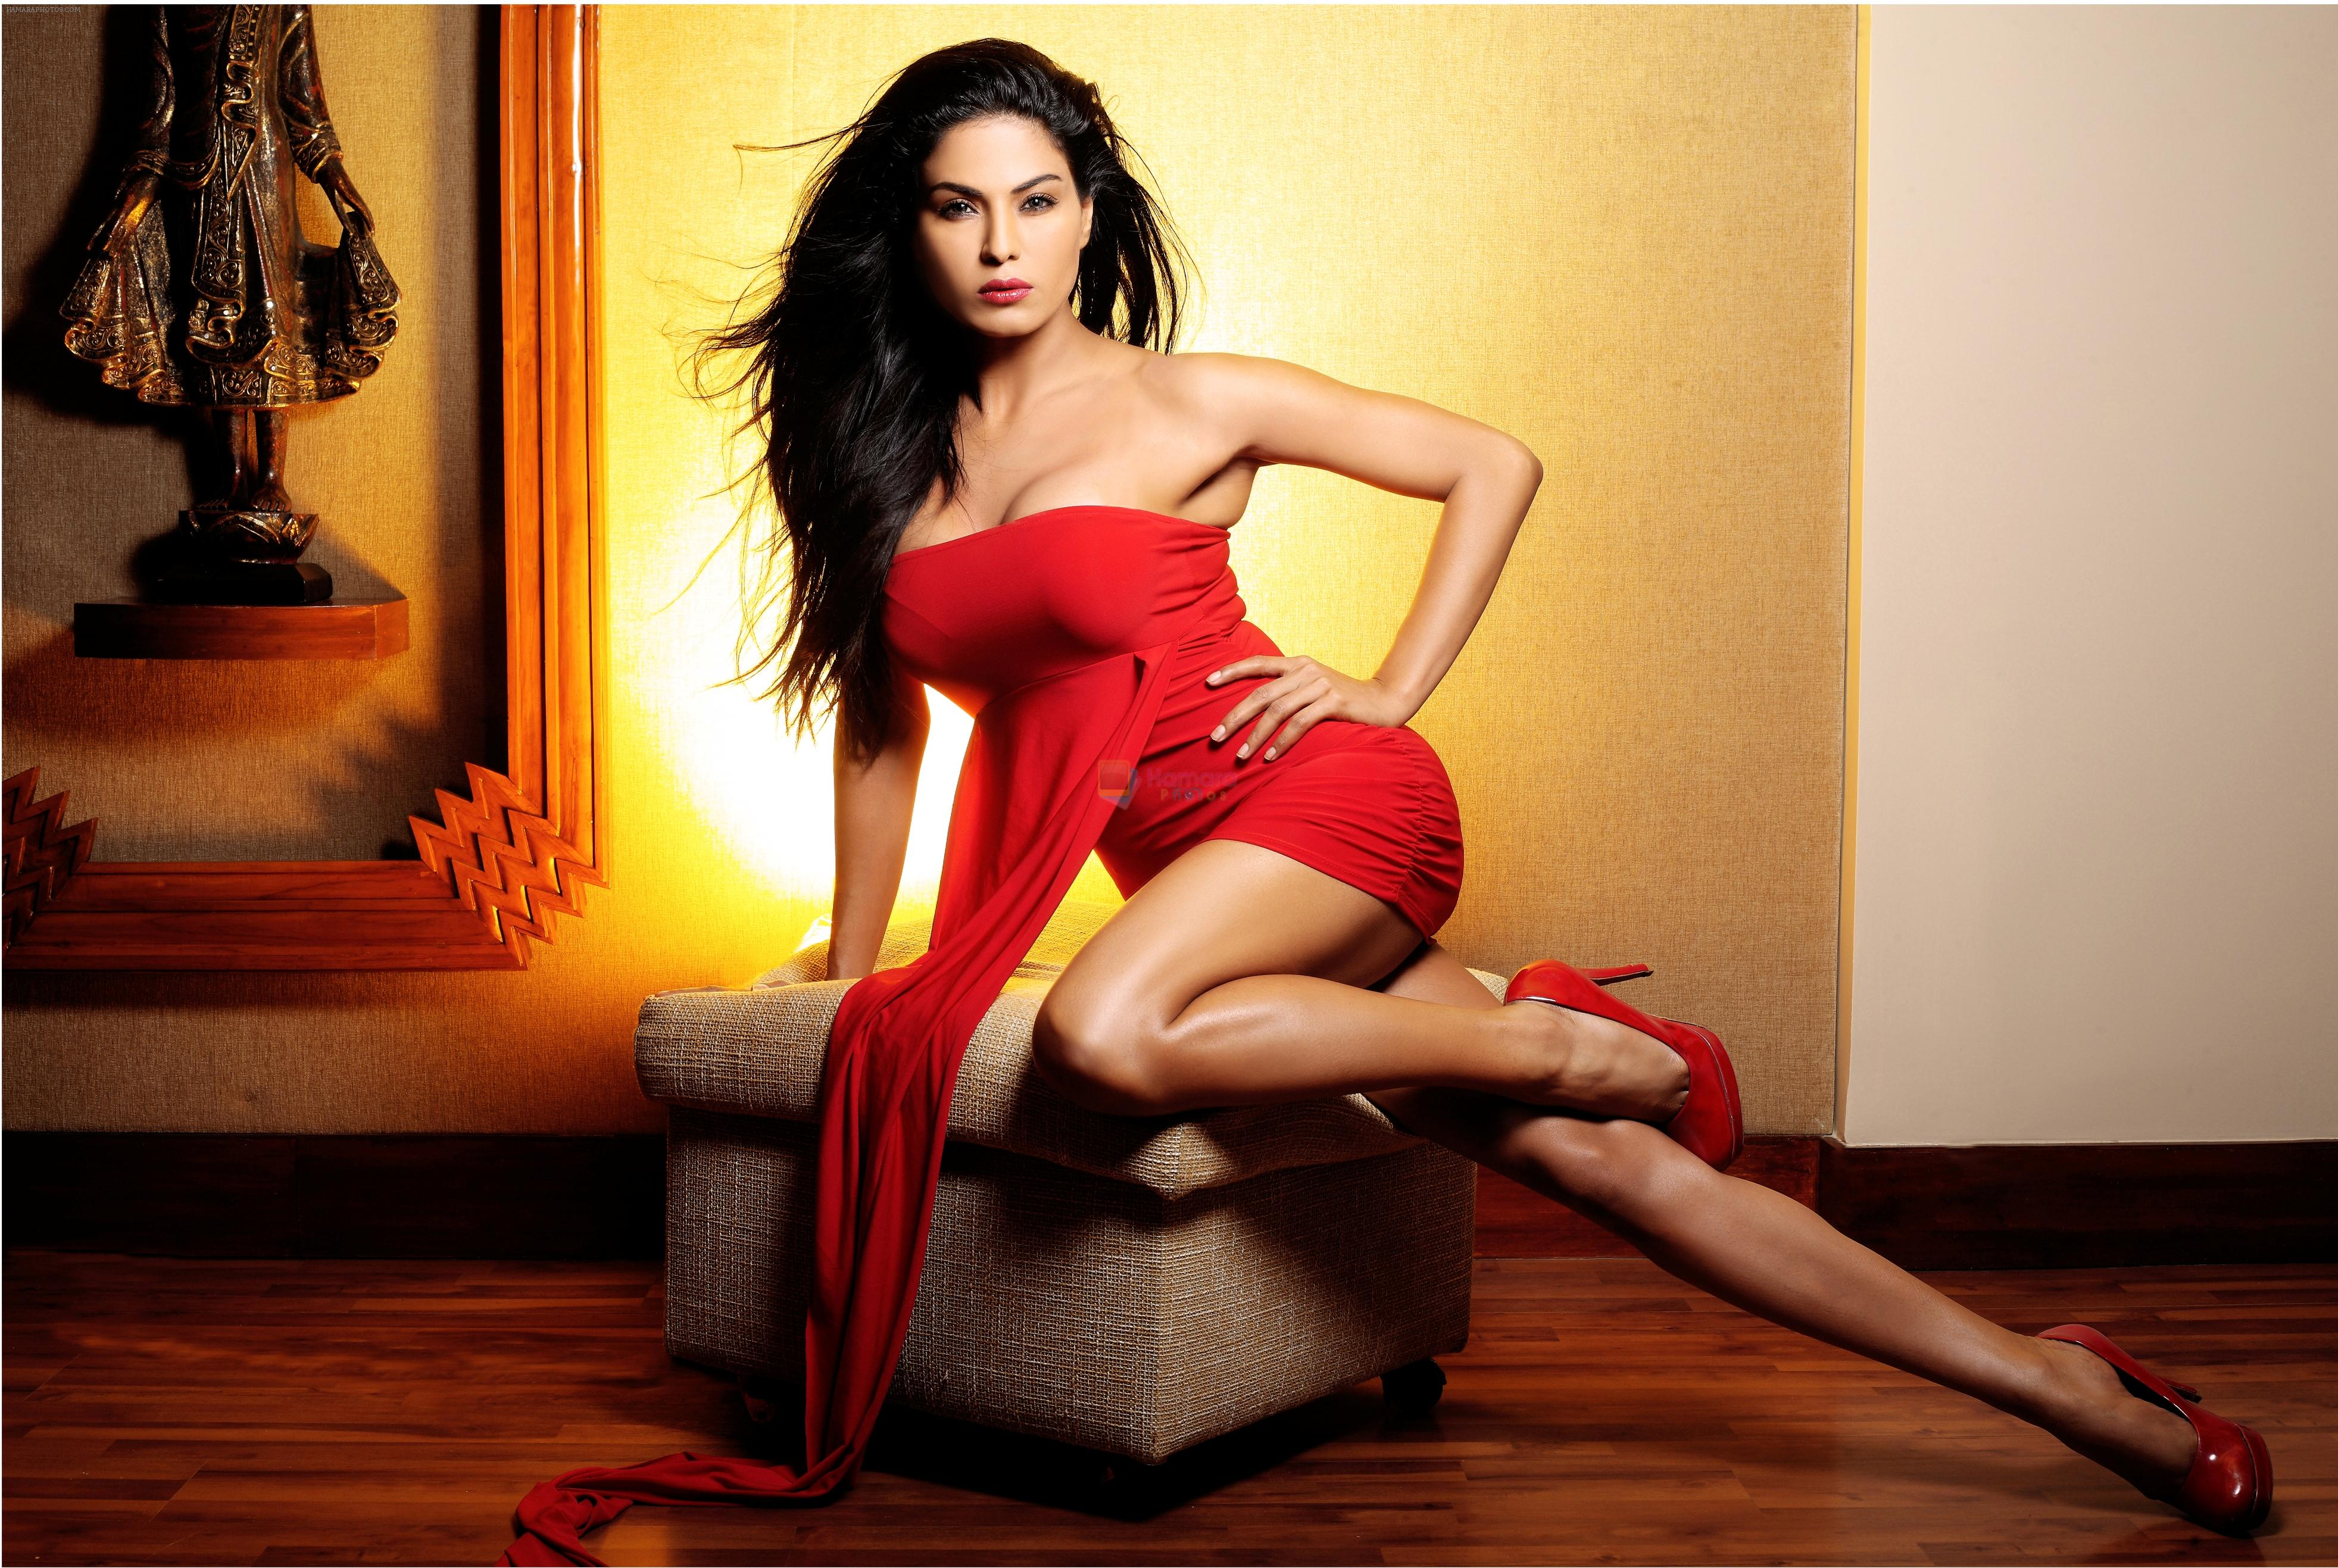 Veena Malik turns sexy Santa for Christmas - Photogallery Blue pictures of veena malik